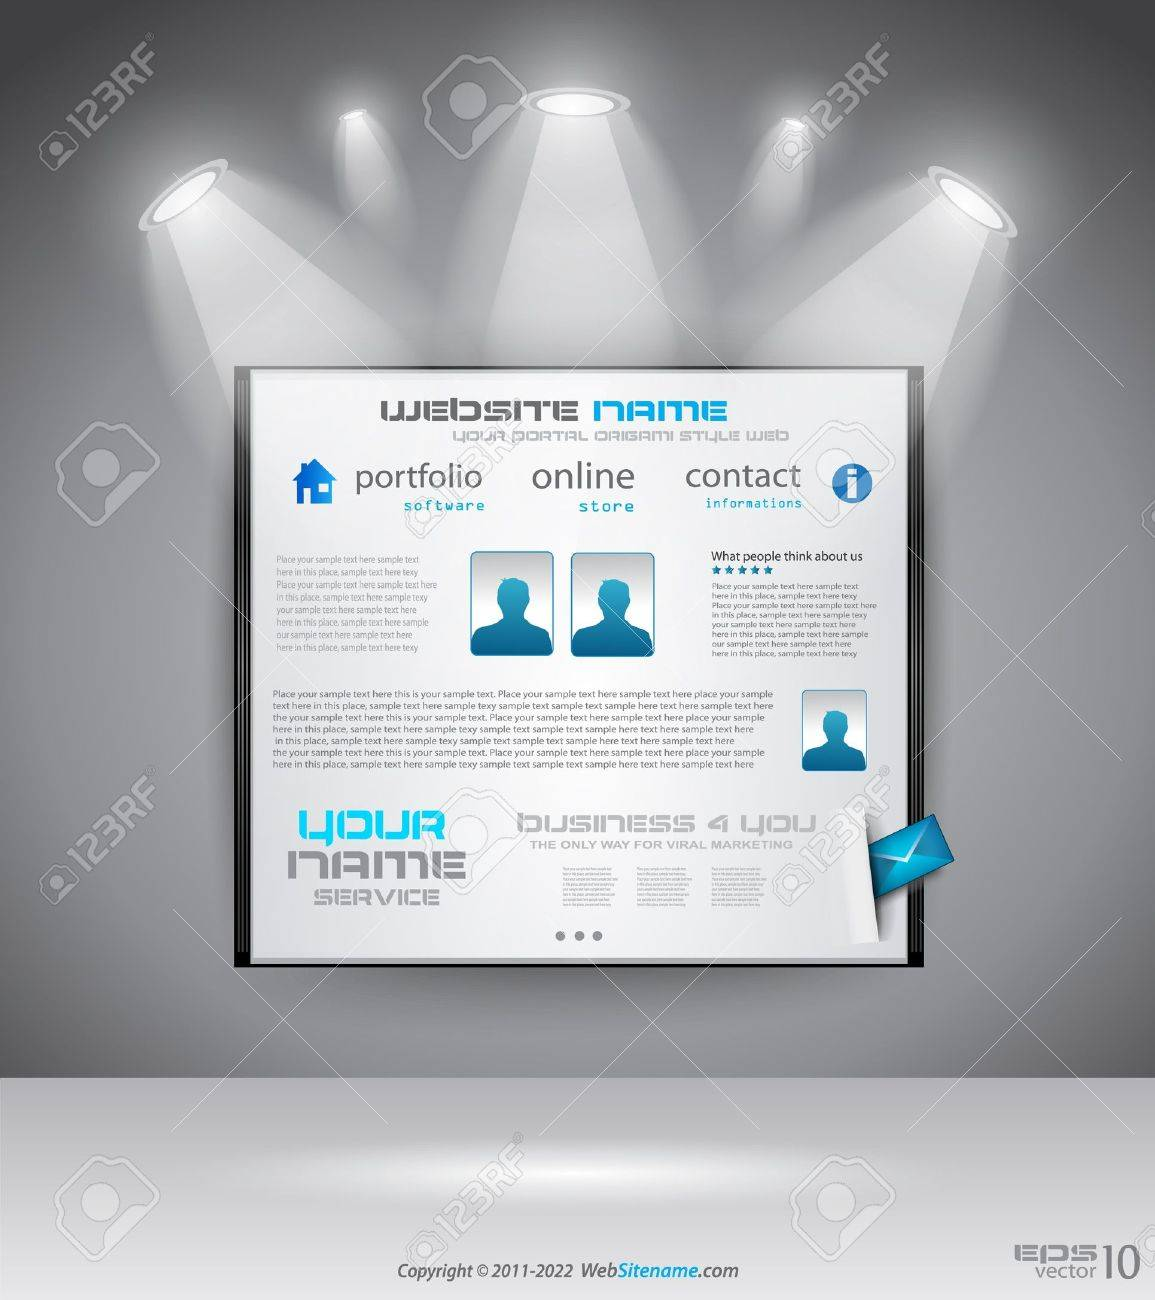 Original Style shopfront showroom website template with spotlights featuring the main panel and design elements. Stock Vector - 10298540